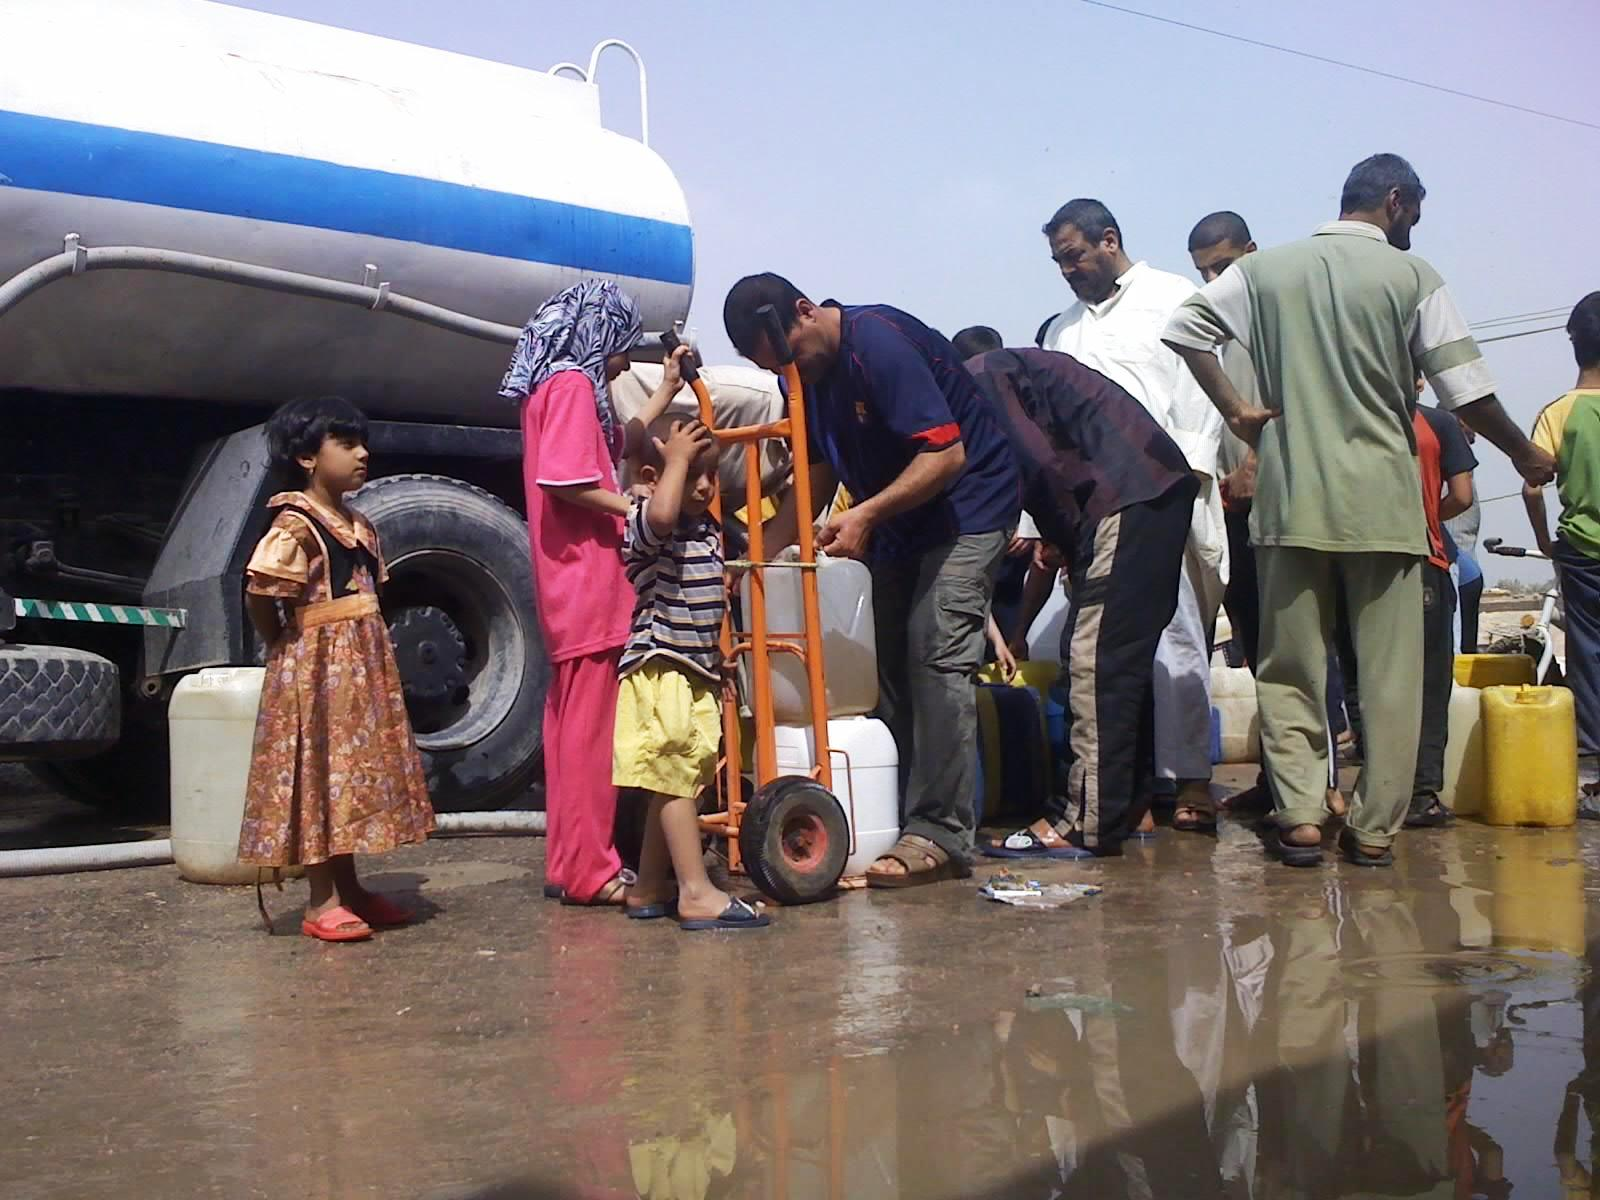 Basra residents rush to receive water from UNICEF water tanks.